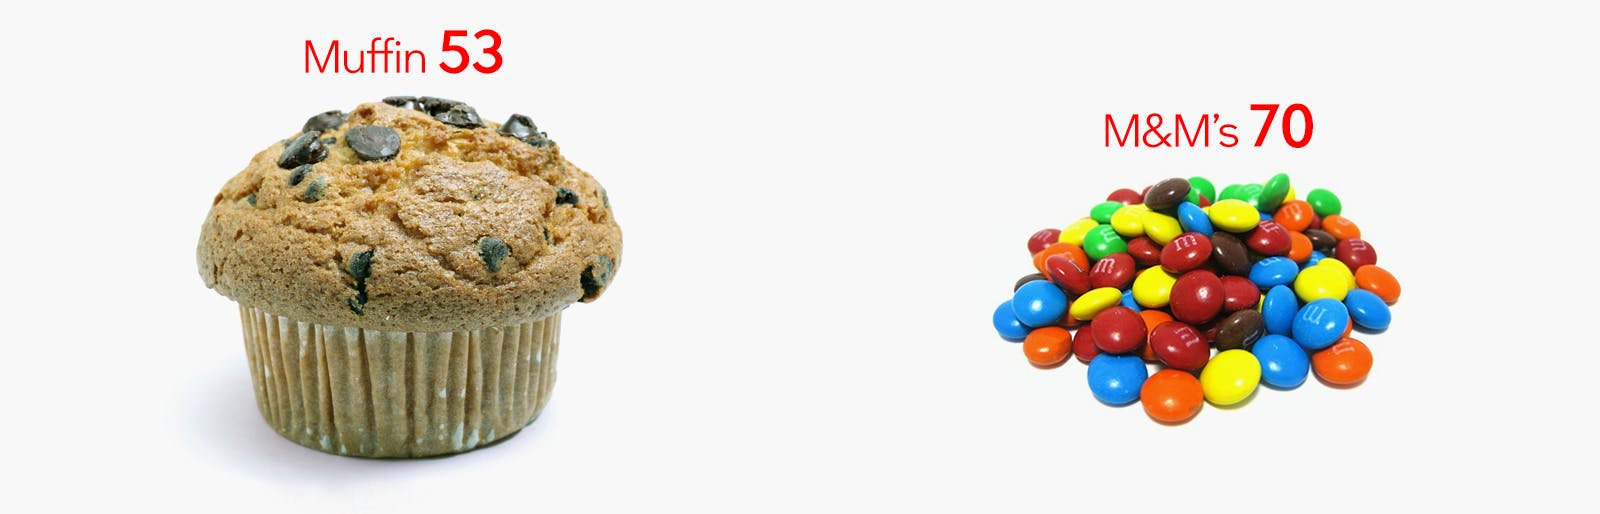 Muffin and M&M's